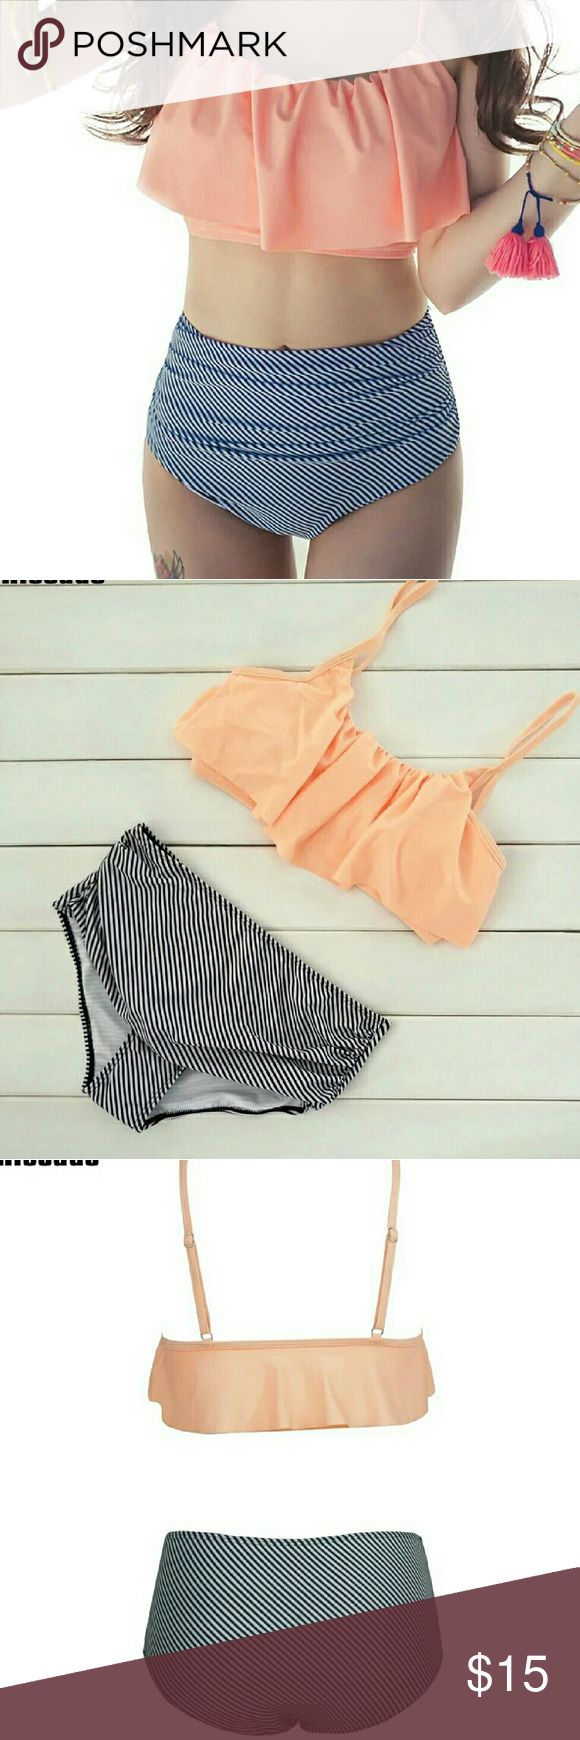 High Waist Swimwear!  JUST COMMENT IF YOU WANT TO ODER AND GIVE YOUR SIZE!!  High Waist Swimwear Women New 2017 Ruffle Vintage Bikinis Swimsuit Bandage Striped Bottom Bathing Suits! Swim